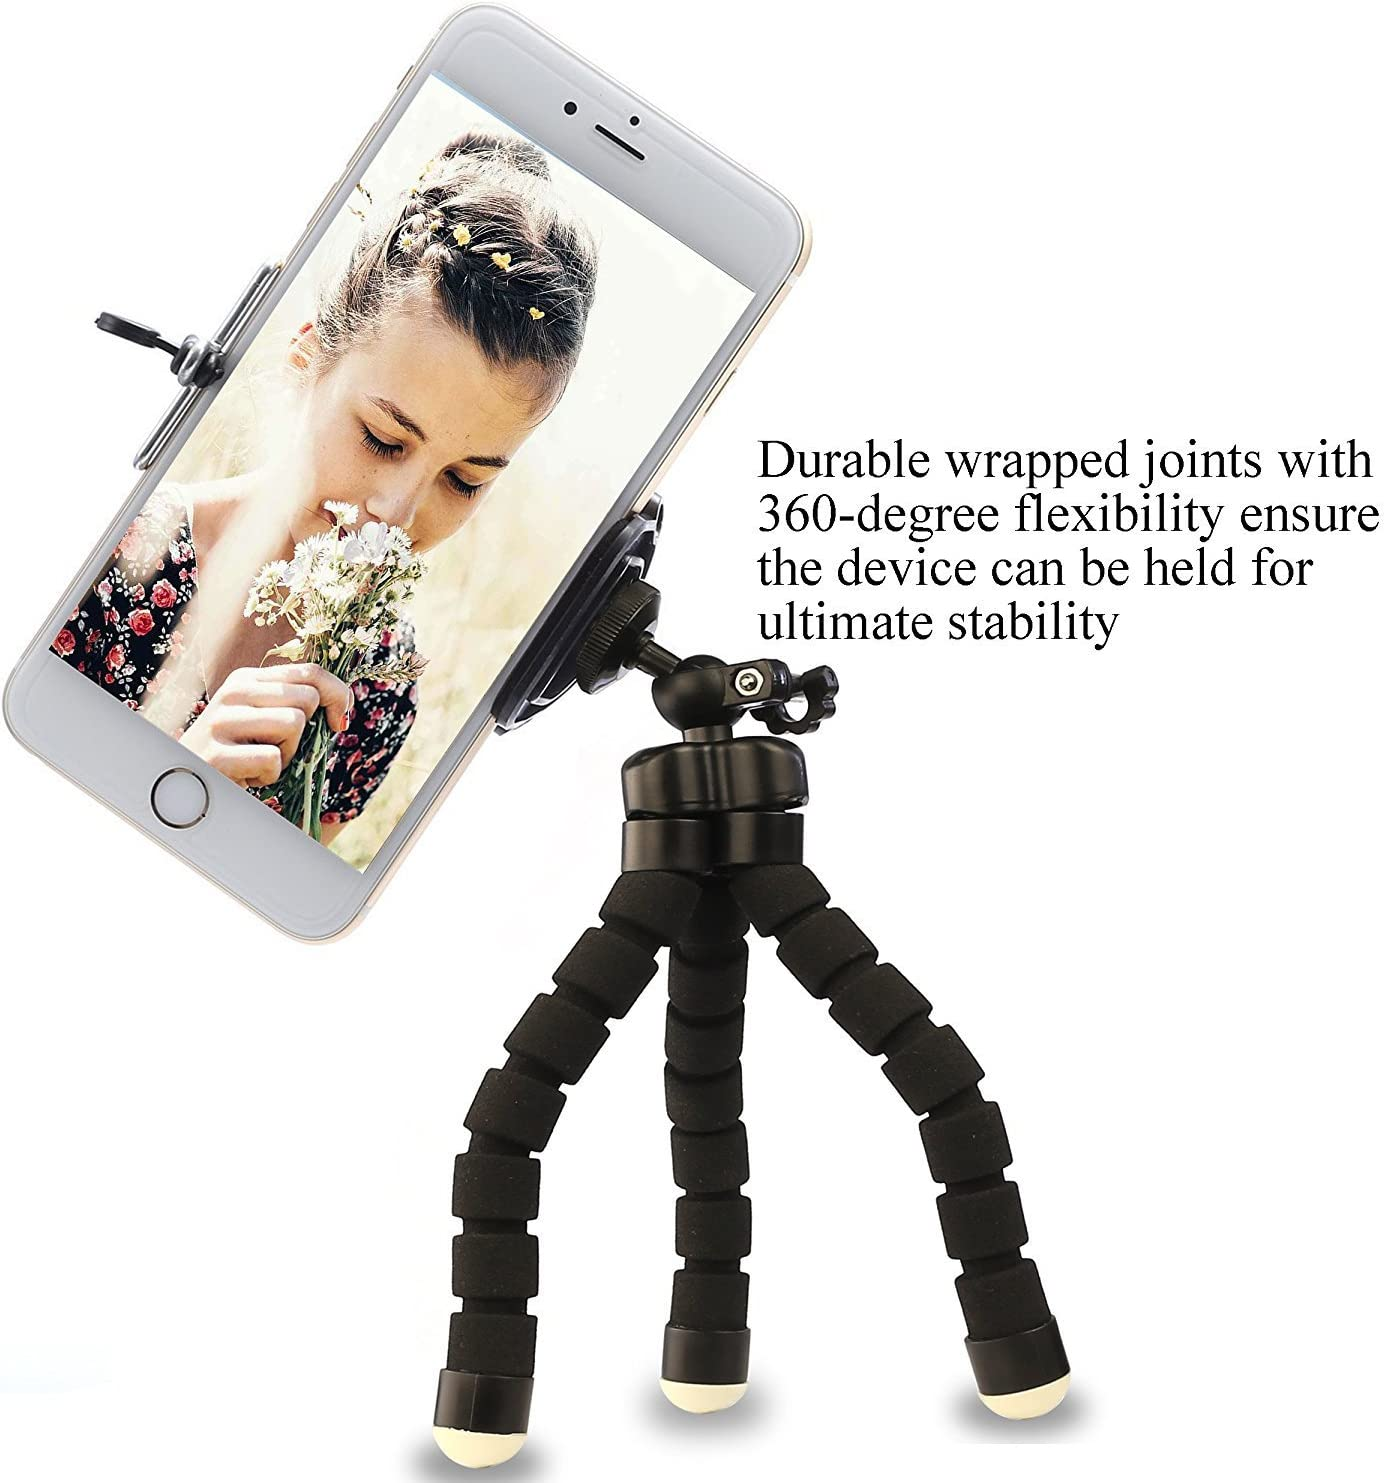 Longess Tripod for Universal Smartphone,Portable and Flexible Cell Phone Stand Mini Octopus Holder with Clip Bracket Mount Compatible with iPhone Android Sports Selfie Stick Digital Camera Red